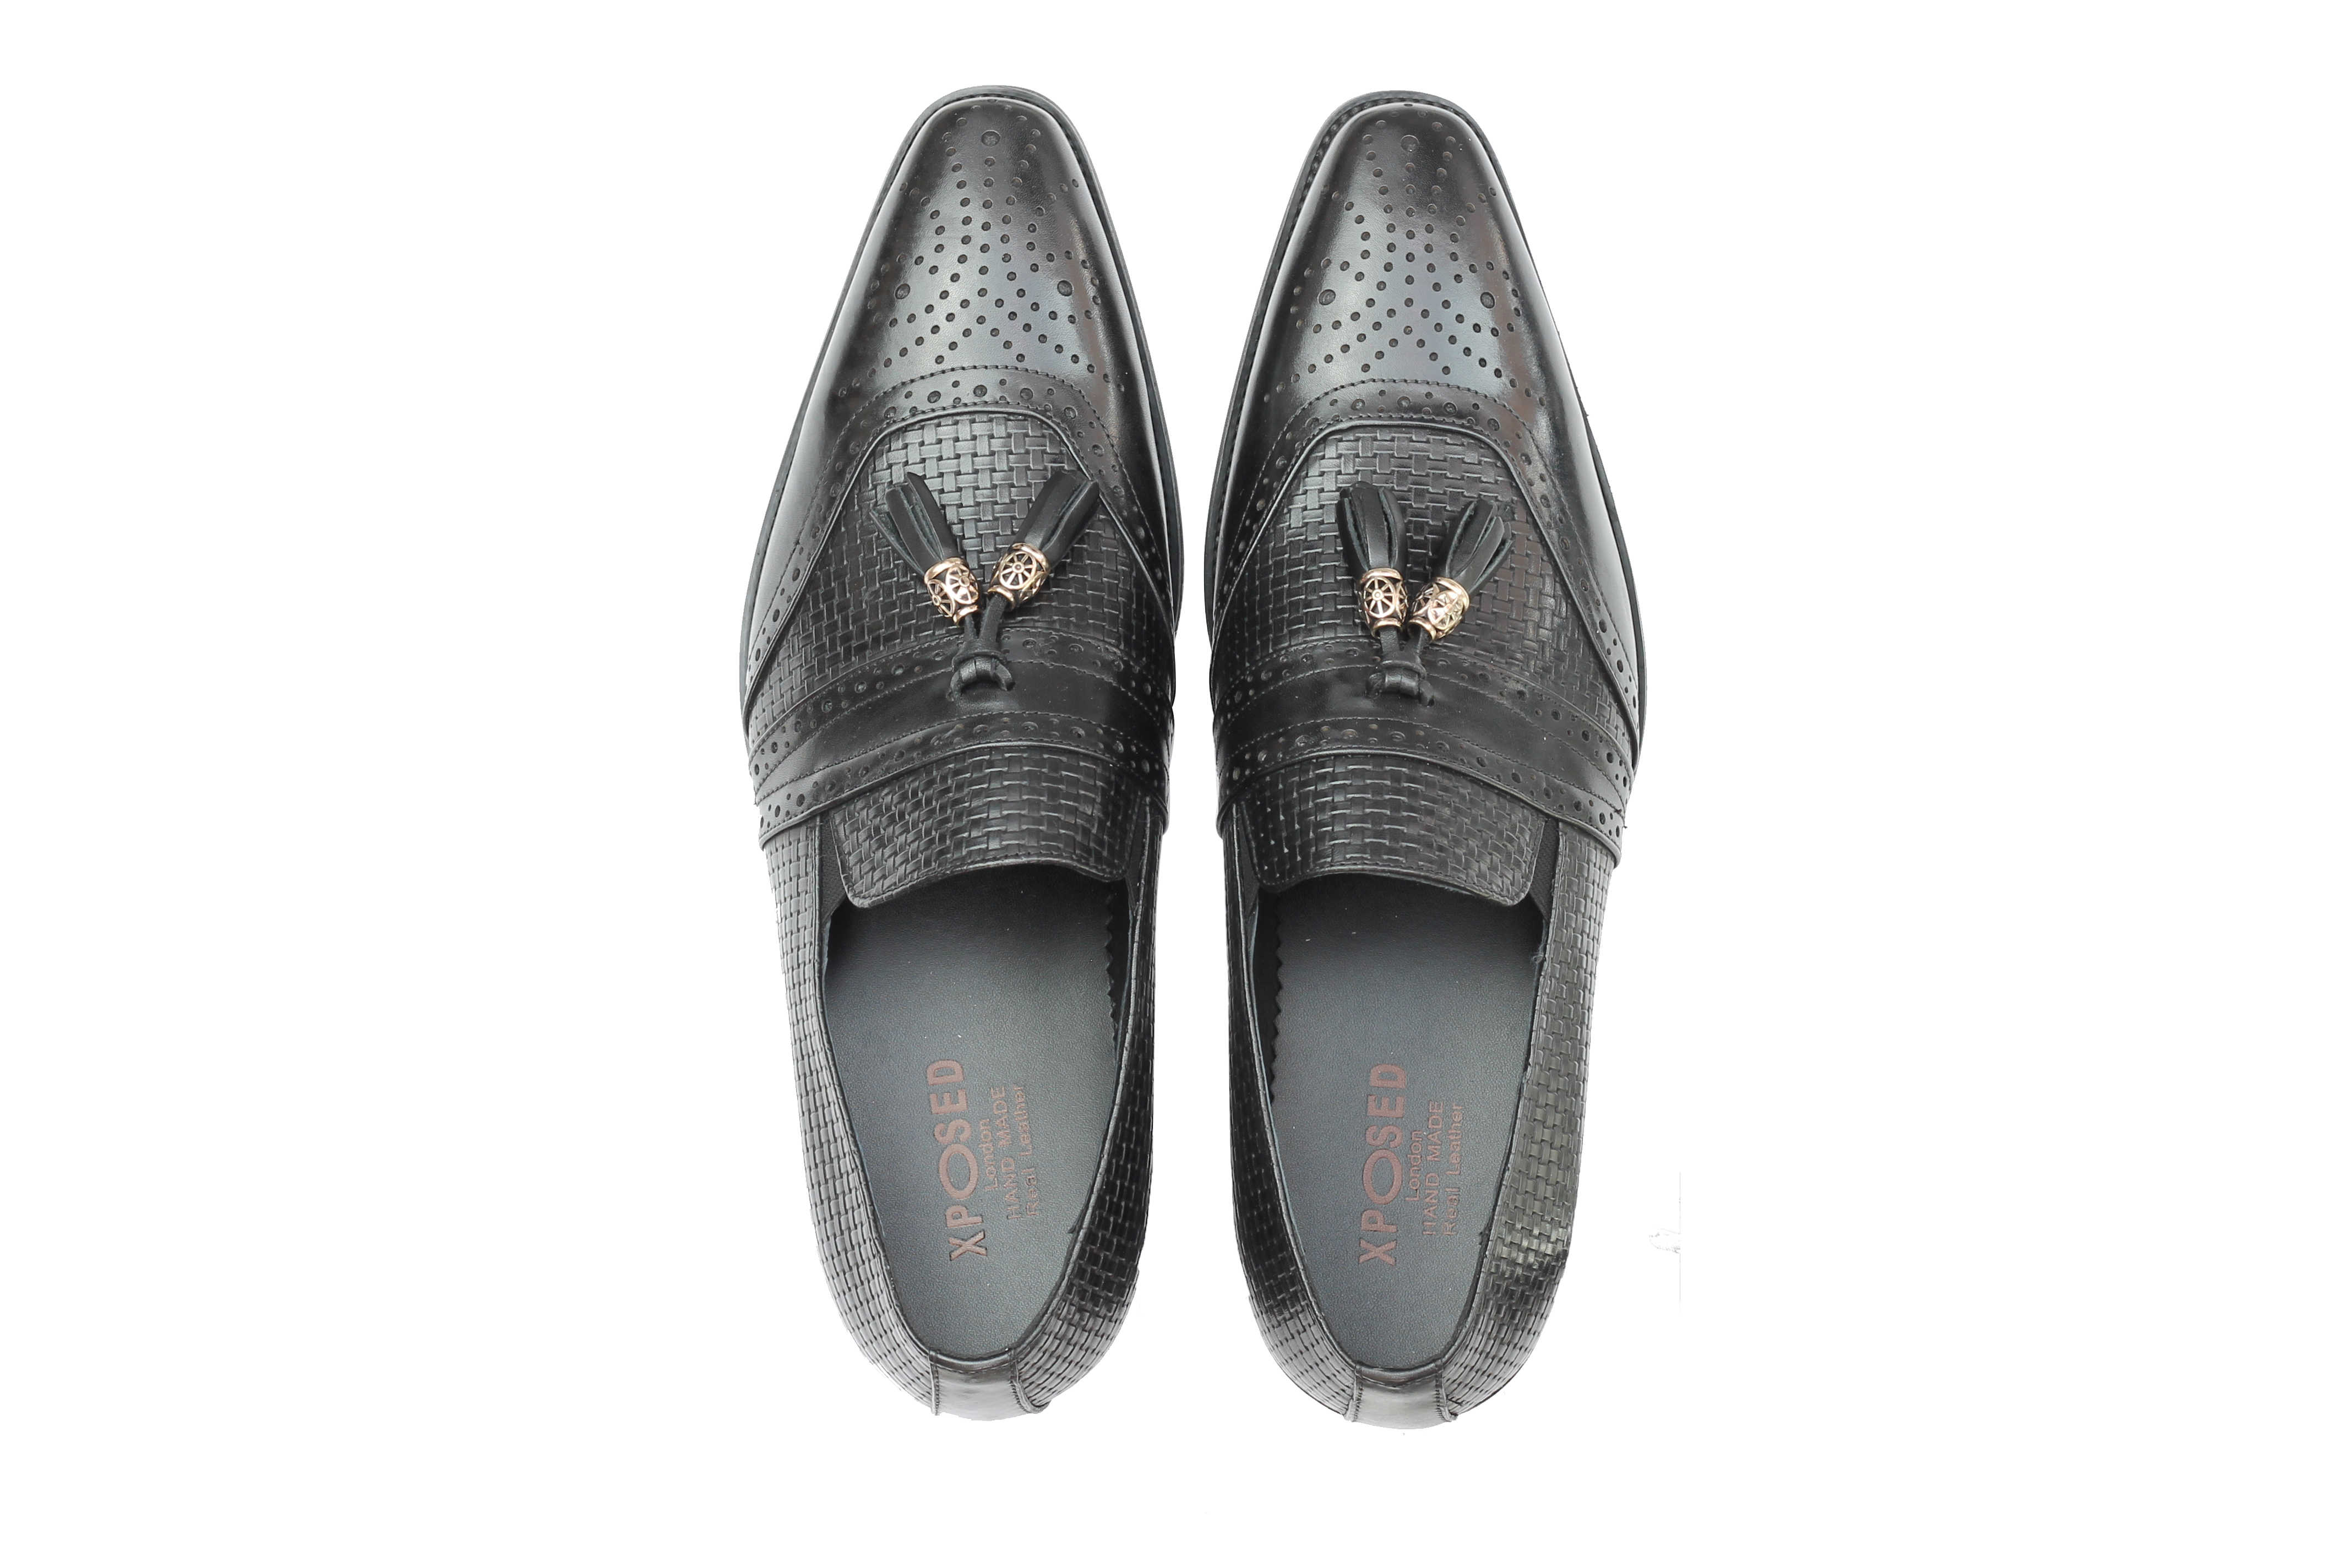 Mens-Real-Leather-Slip-on-Tassel-Loafers-High-Detailed-Smart-Dress-Party-Shoes thumbnail 7